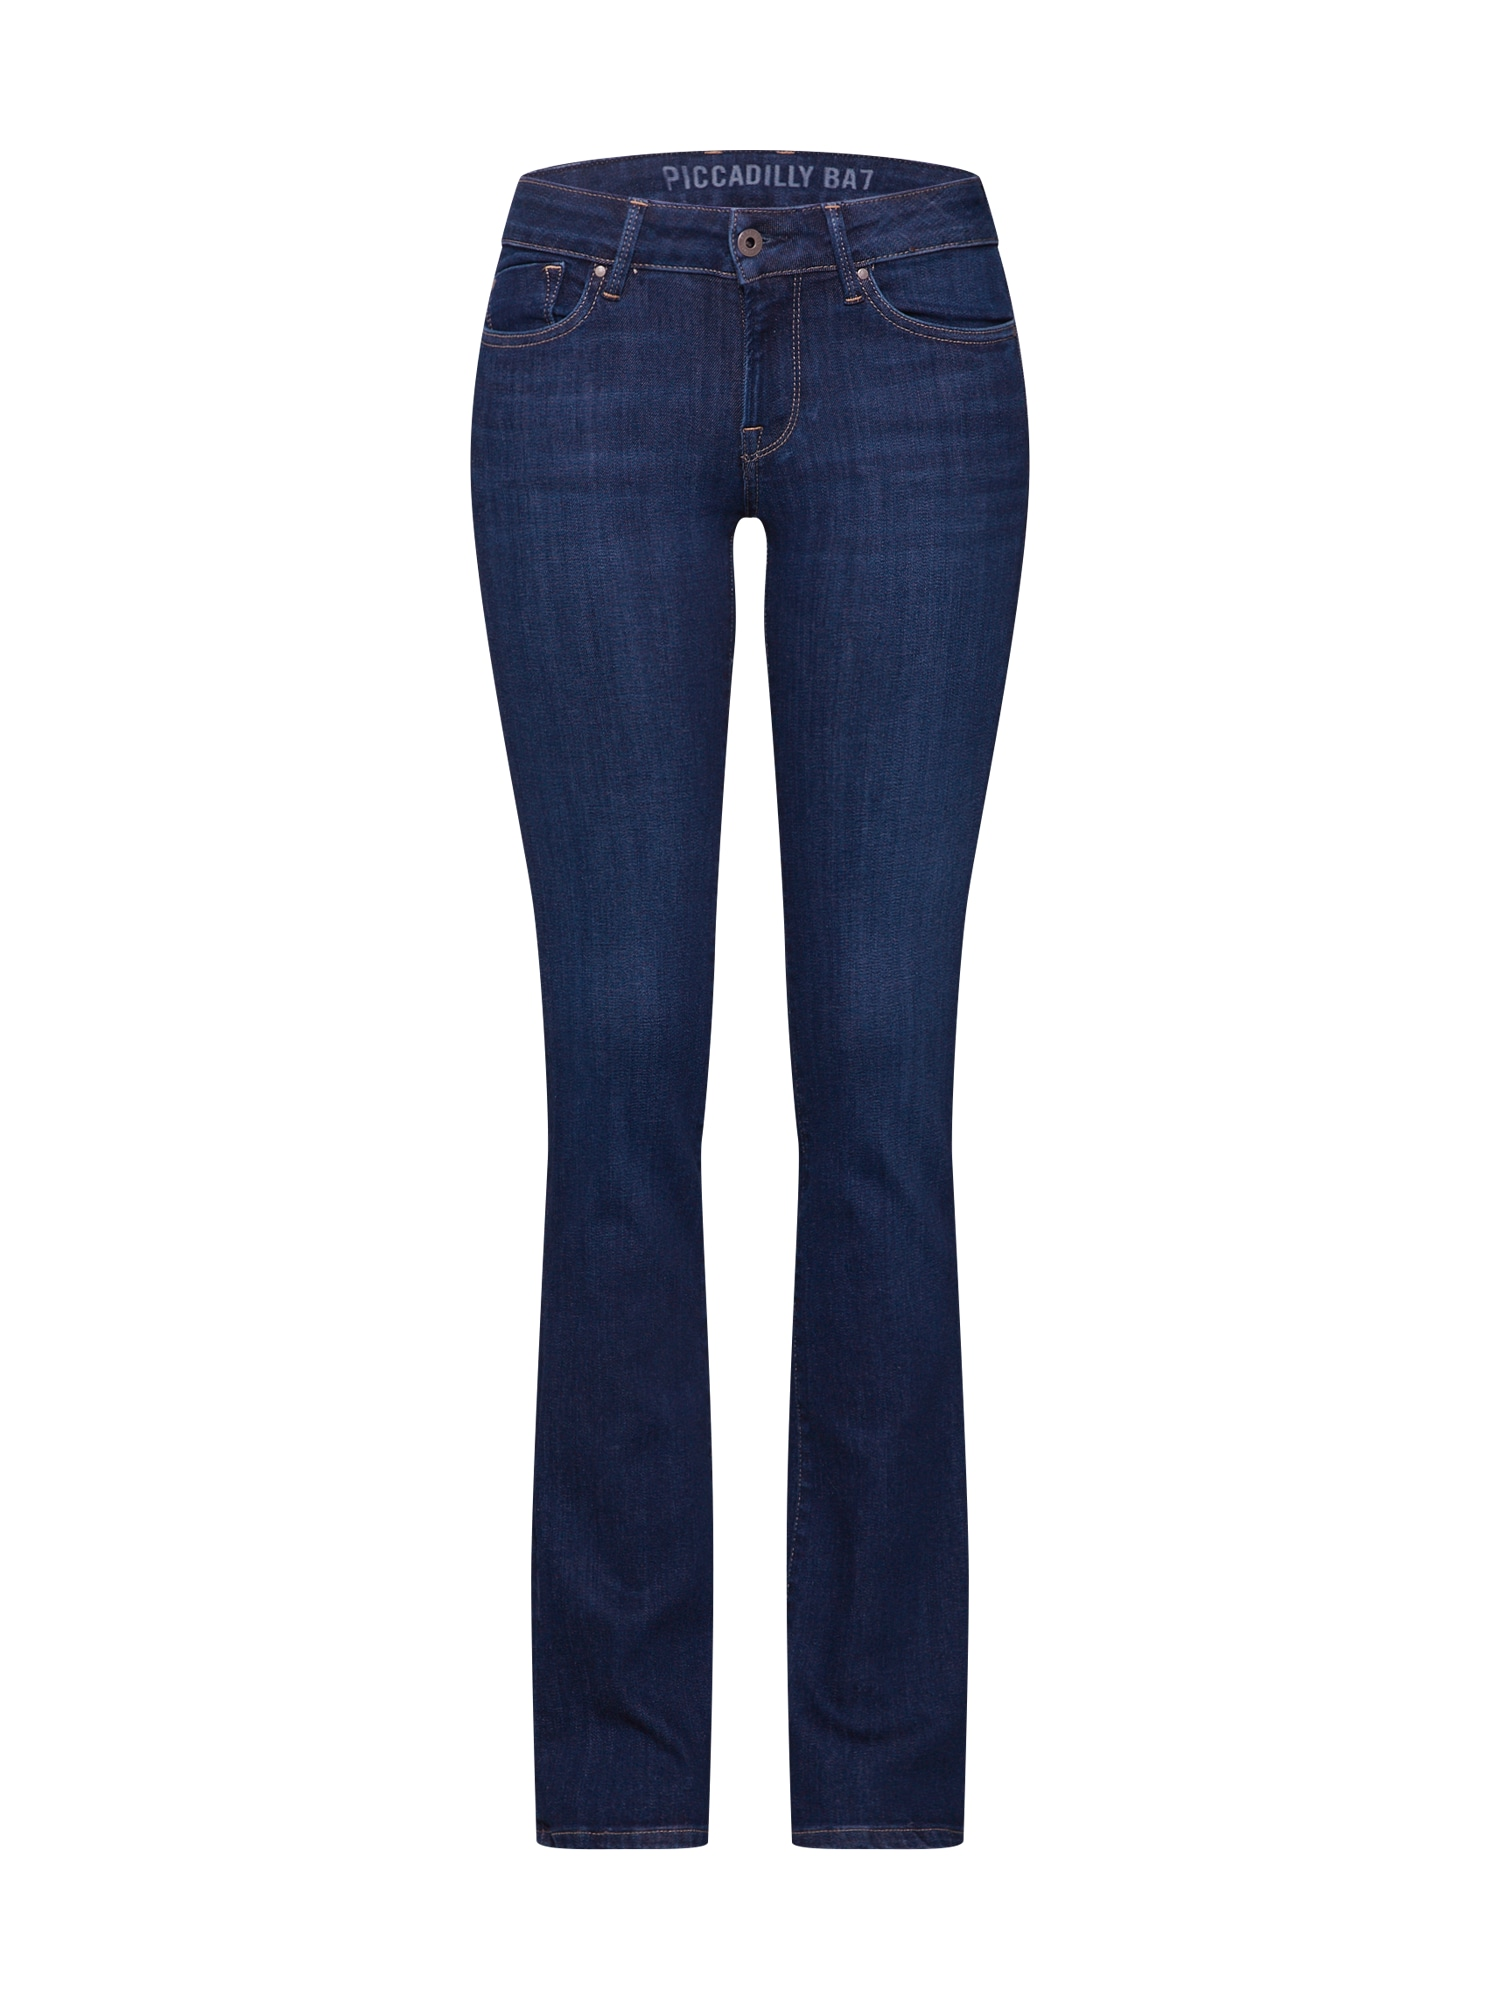 Jeans 'Piccadilly' | Bekleidung > Jeans | Pepe Jeans